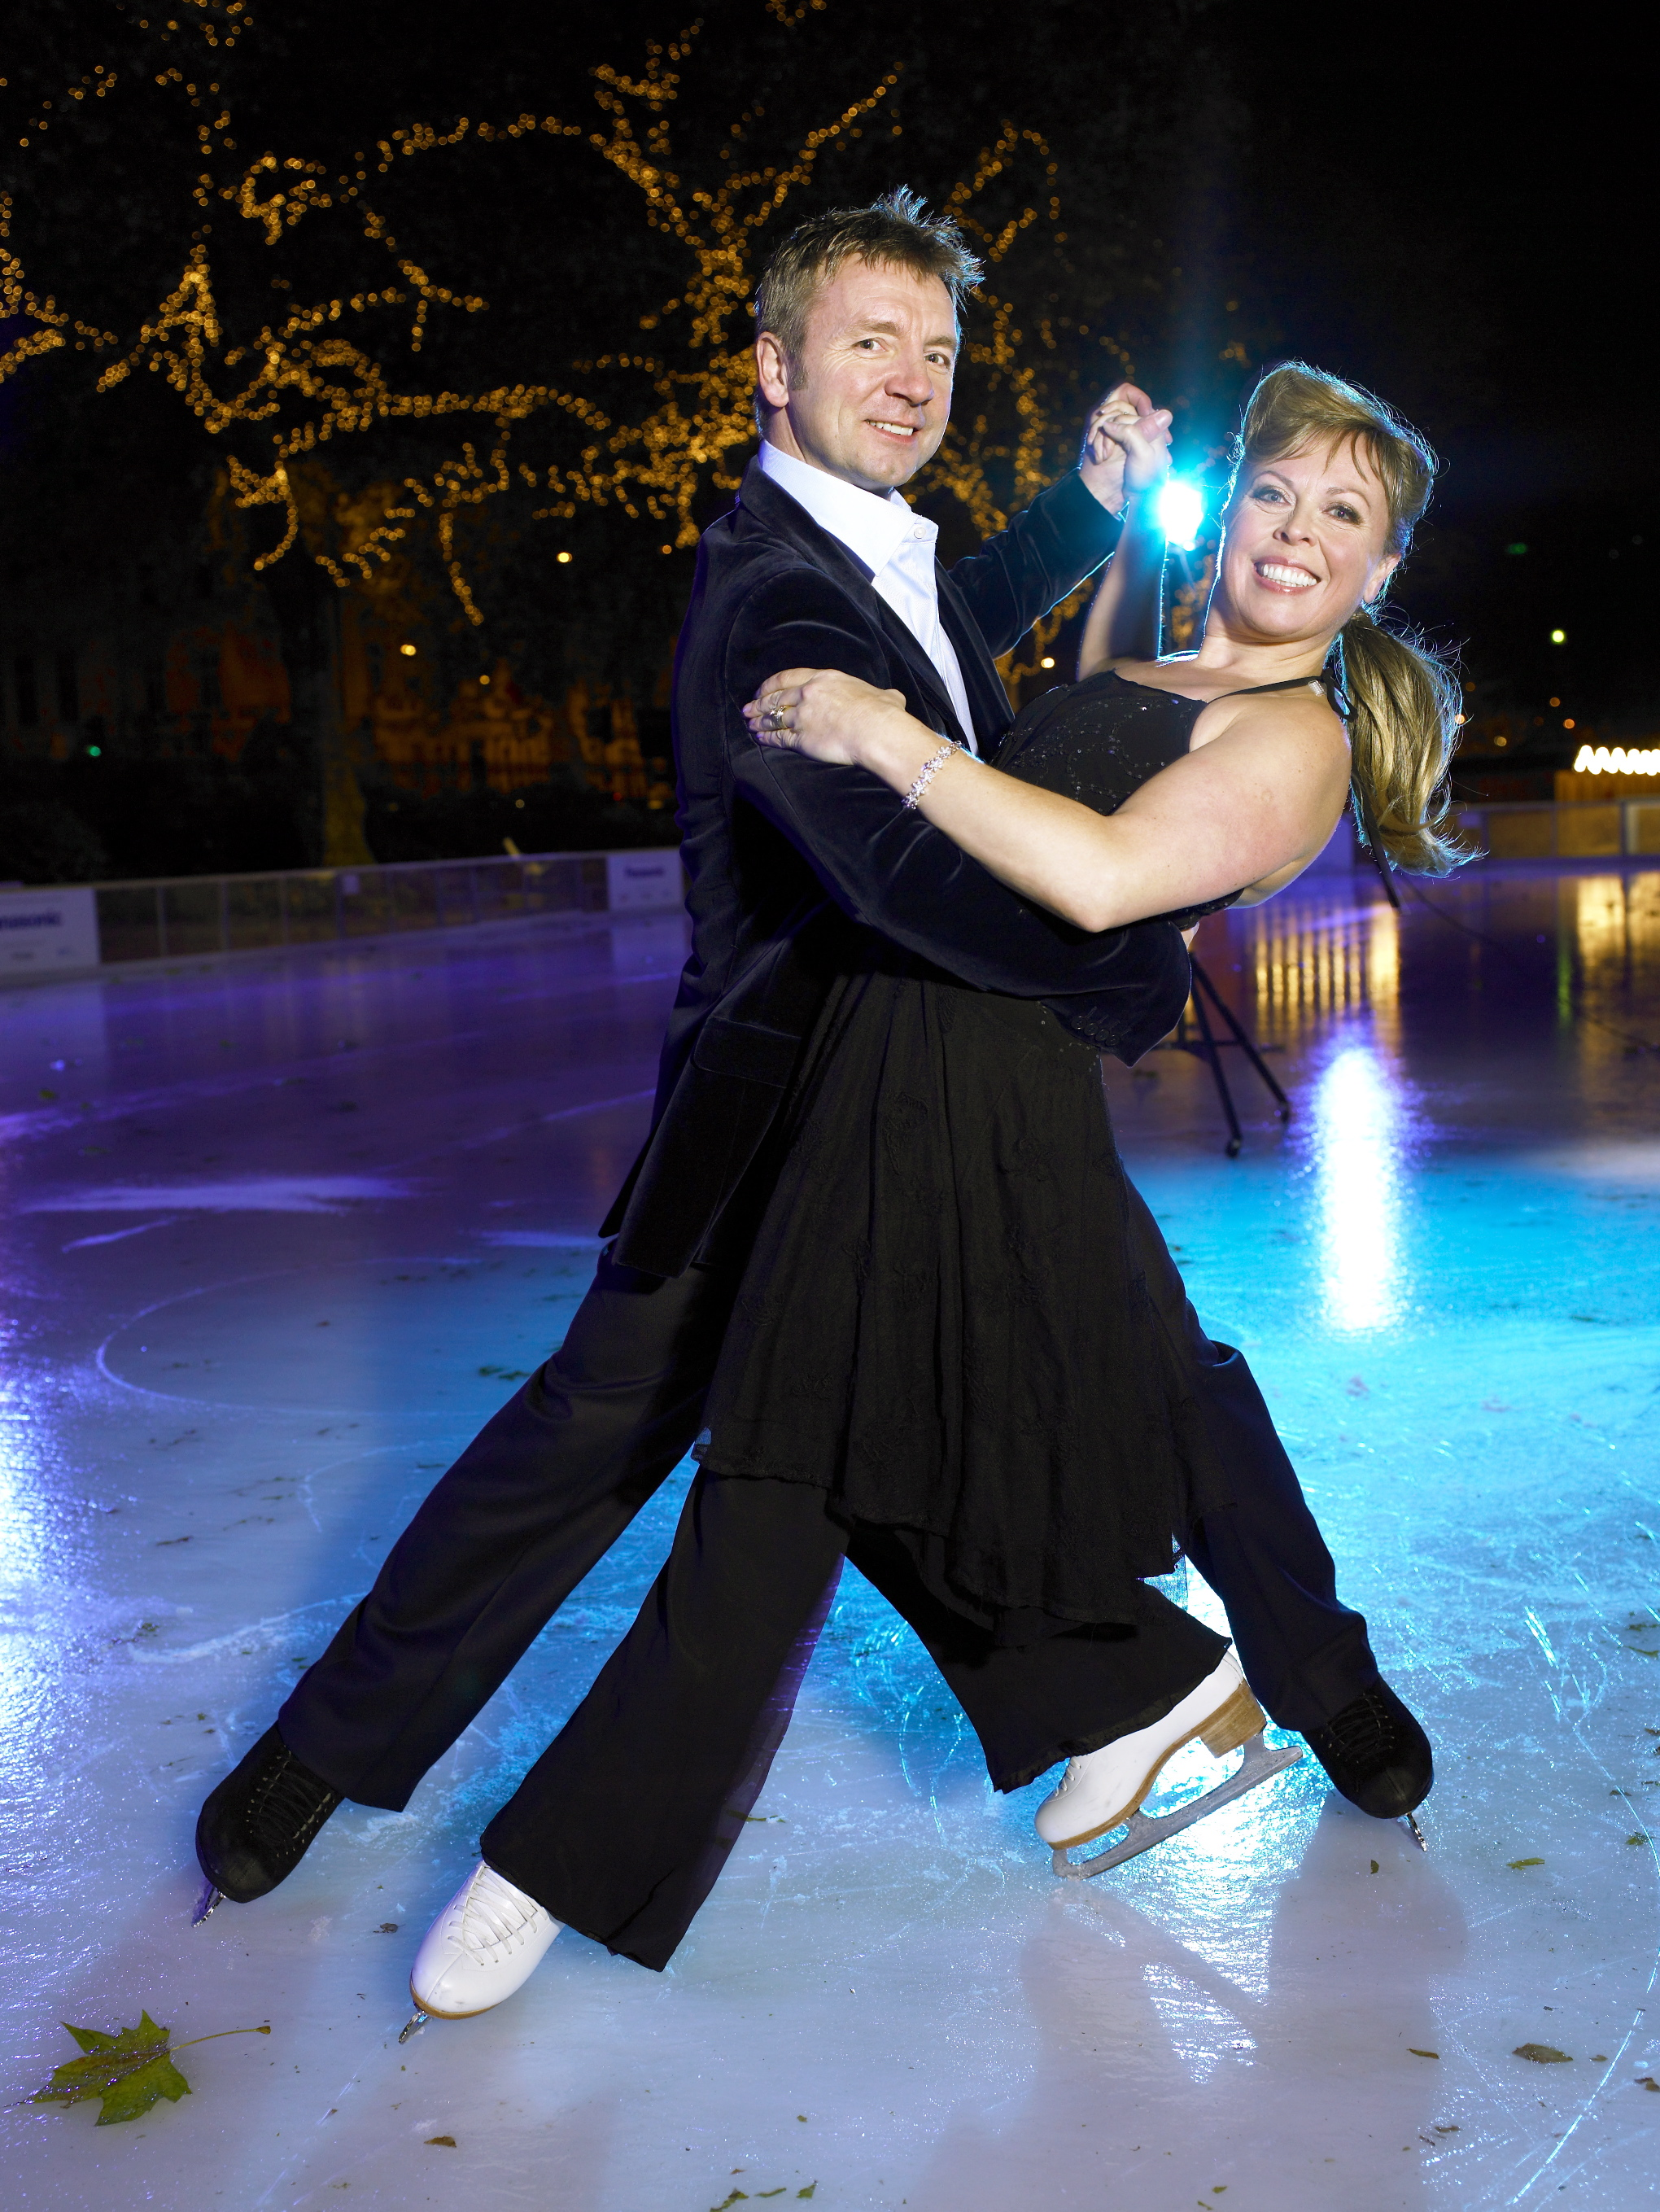 Injury forces Christopher Dean out of Ice show